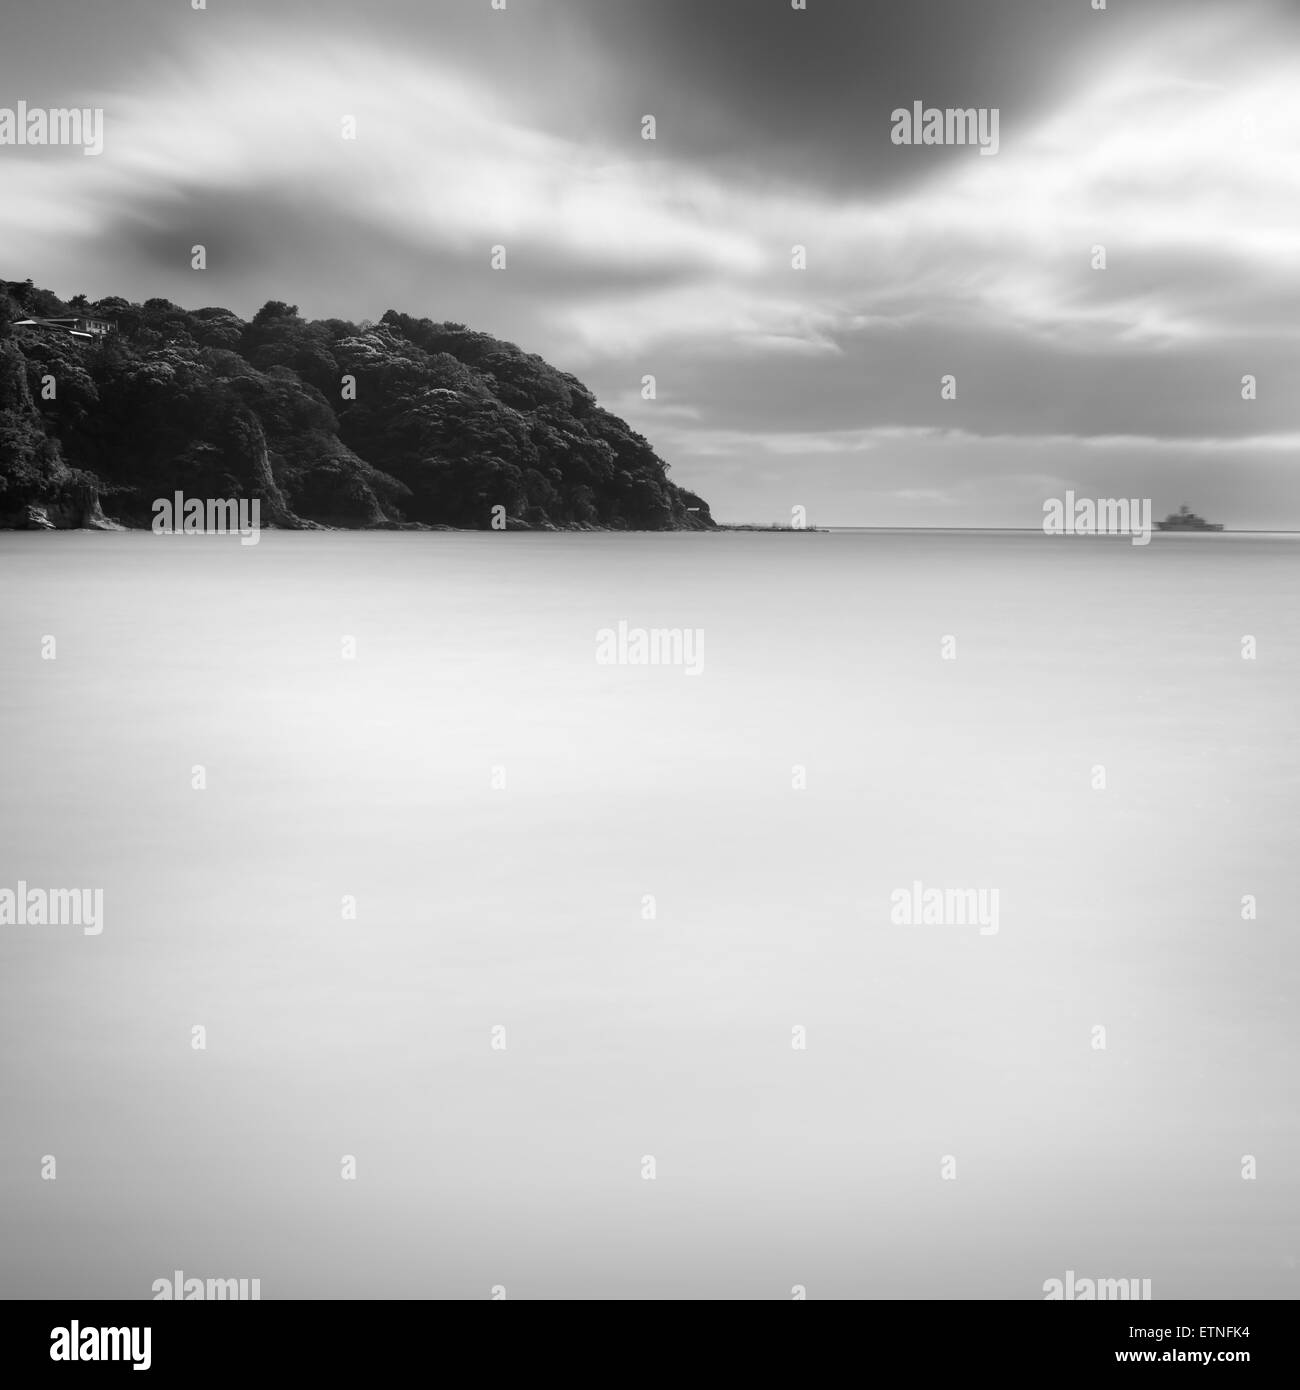 Island in Enoshima and silky water under clouded sky, Kanagawa Prefecture, Japan - Stock Image